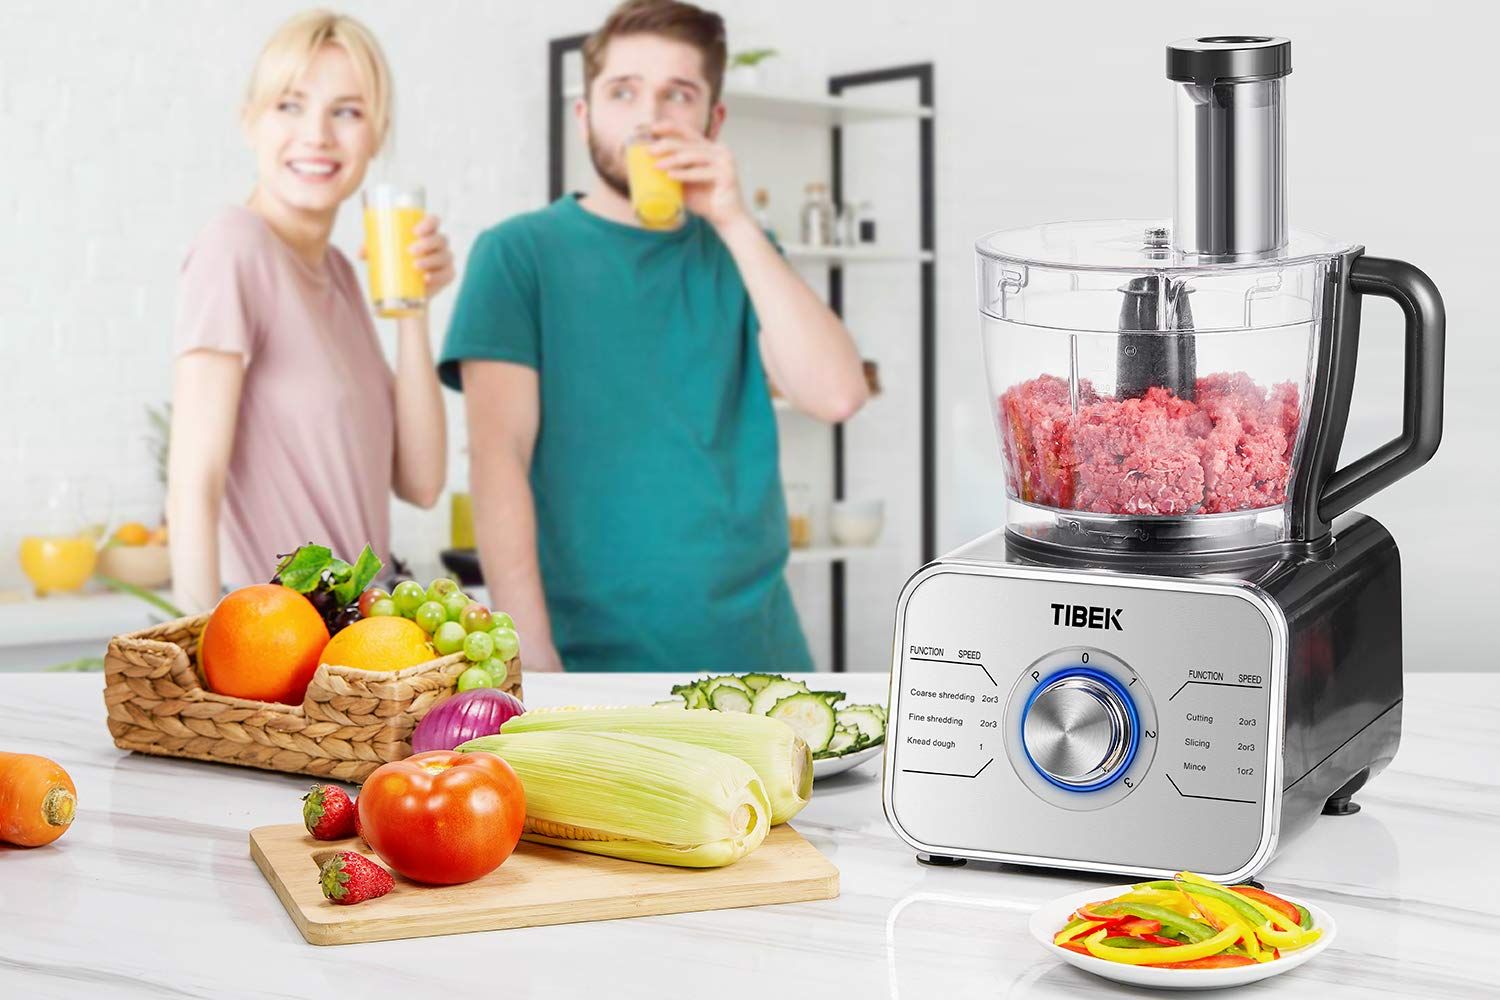 Food Processor 12-Cup, Multi-Function Food Processor 6 Main Functions with Chopper Blade, Dough Blade, Shredder, Slicing Attachments, 3 Speed 600W Powerful Processor, Silver by Tibek (Image #9)